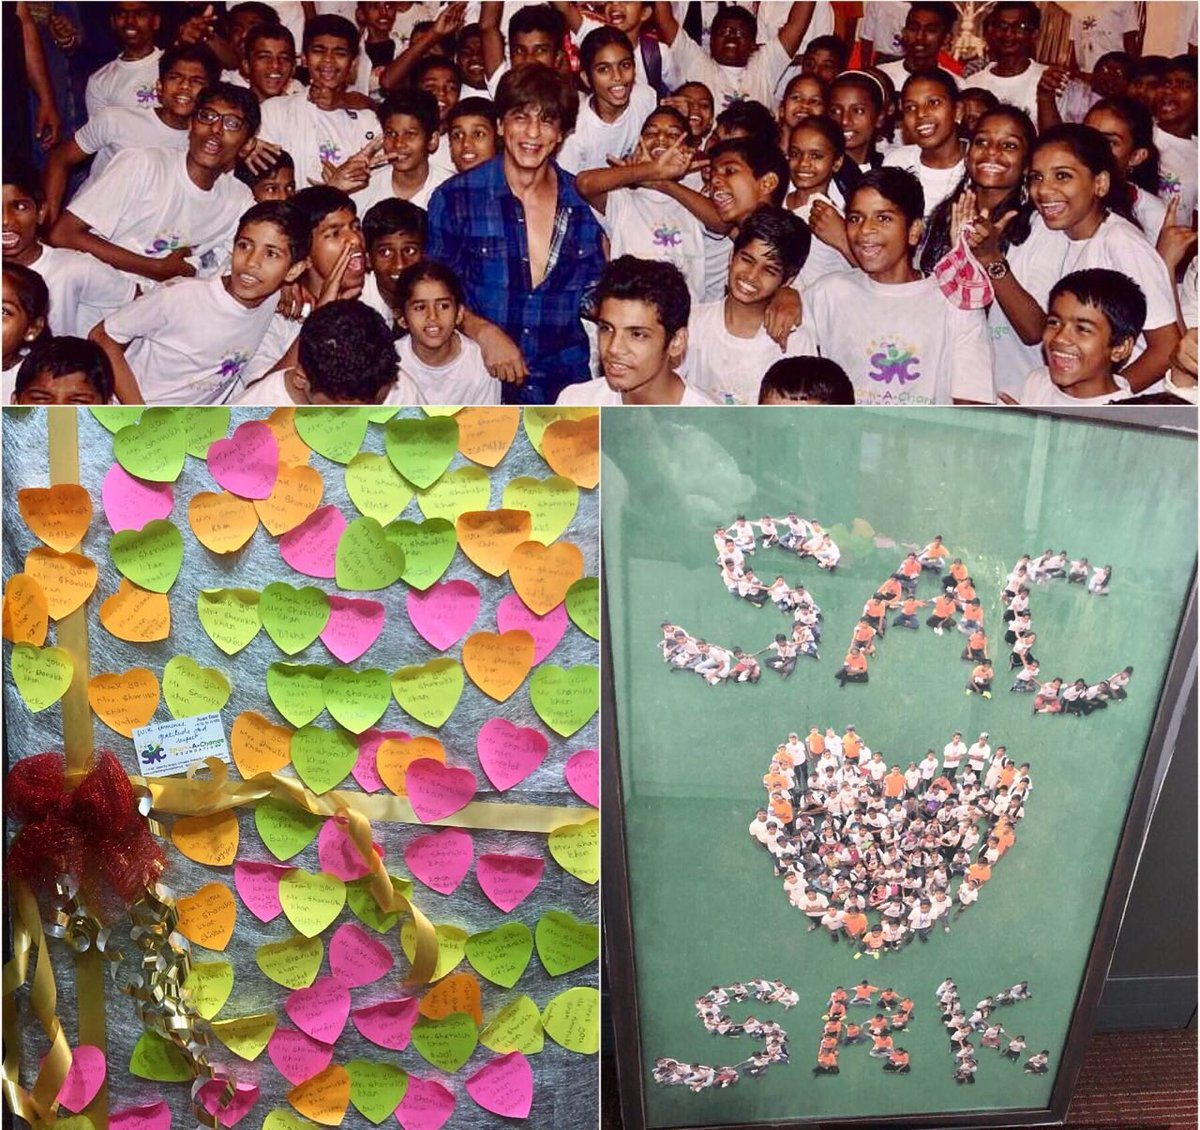 """.@iamsrk #ShahRukhKhan was delighted to receive gifts,from children at Sparke a change foundation.  """"Always good to receive gifts that are as beautiful as these thank u to all the kind hearted children at @ChangeSPARKers ! Keep spreading the smiles #MeerFoundation  (16 Feb 2018 )"""